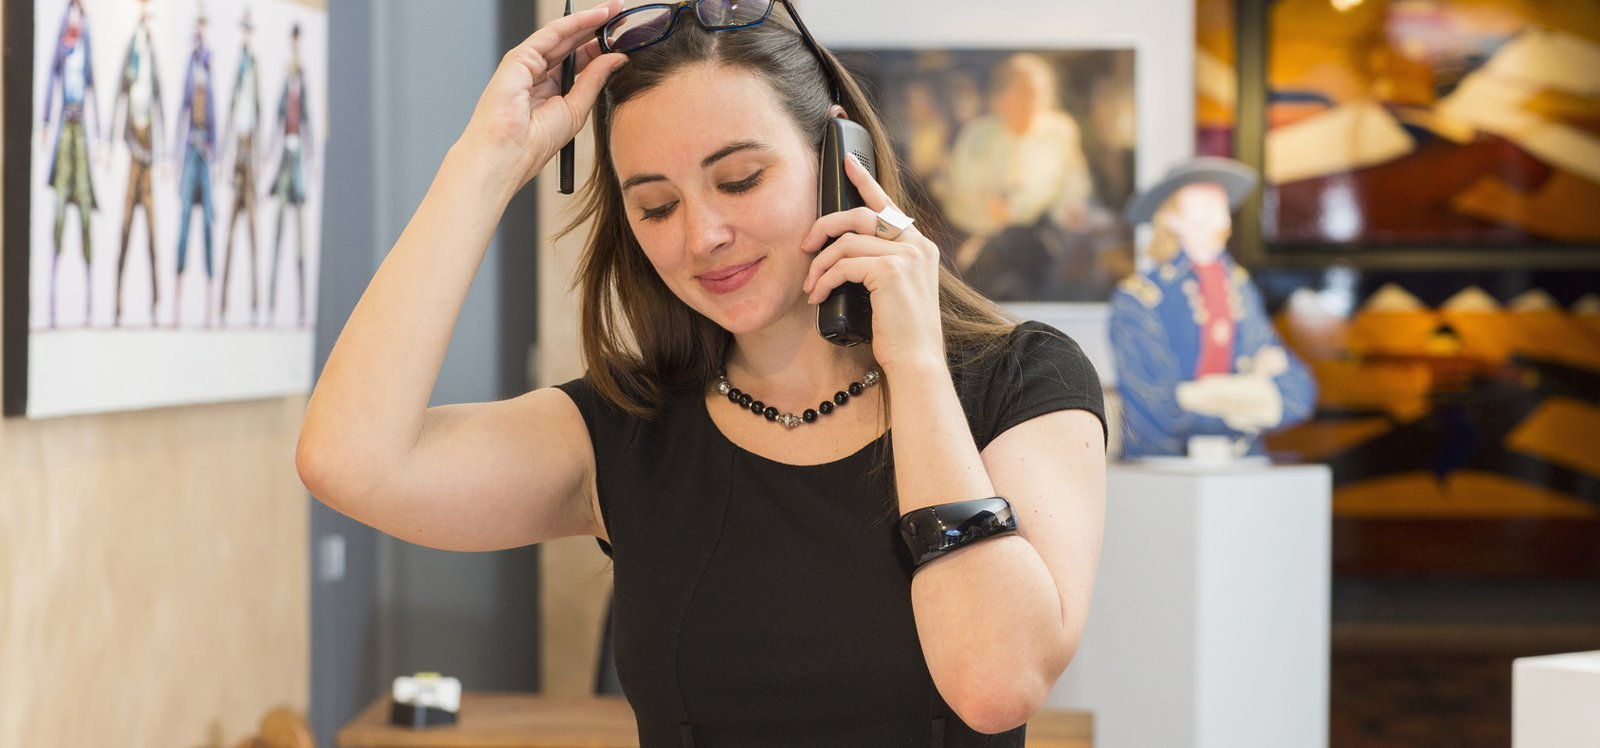 Woman making a business call